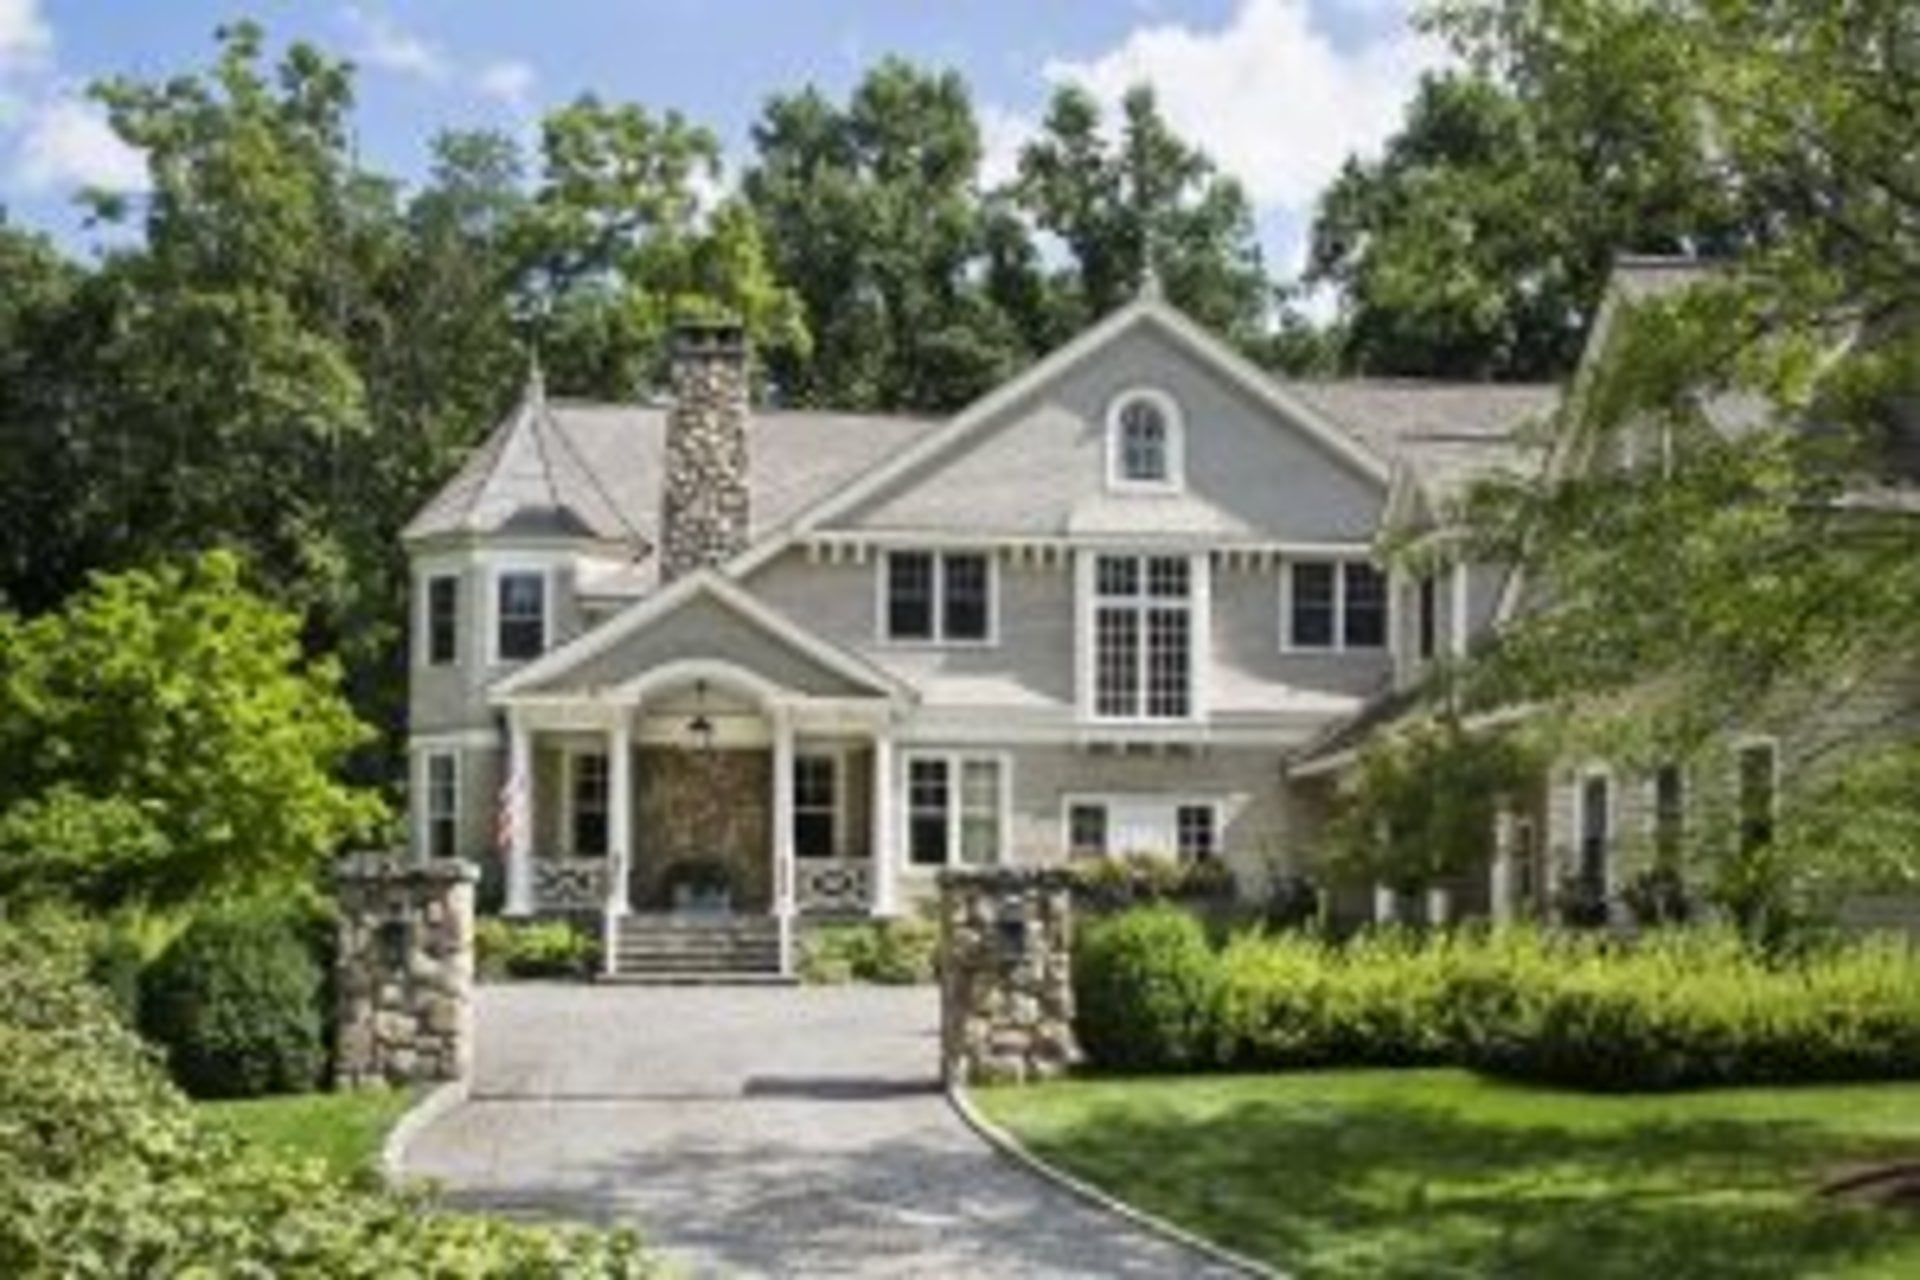 Exterior-shingle-style-custom-home-new-canaan-ct2